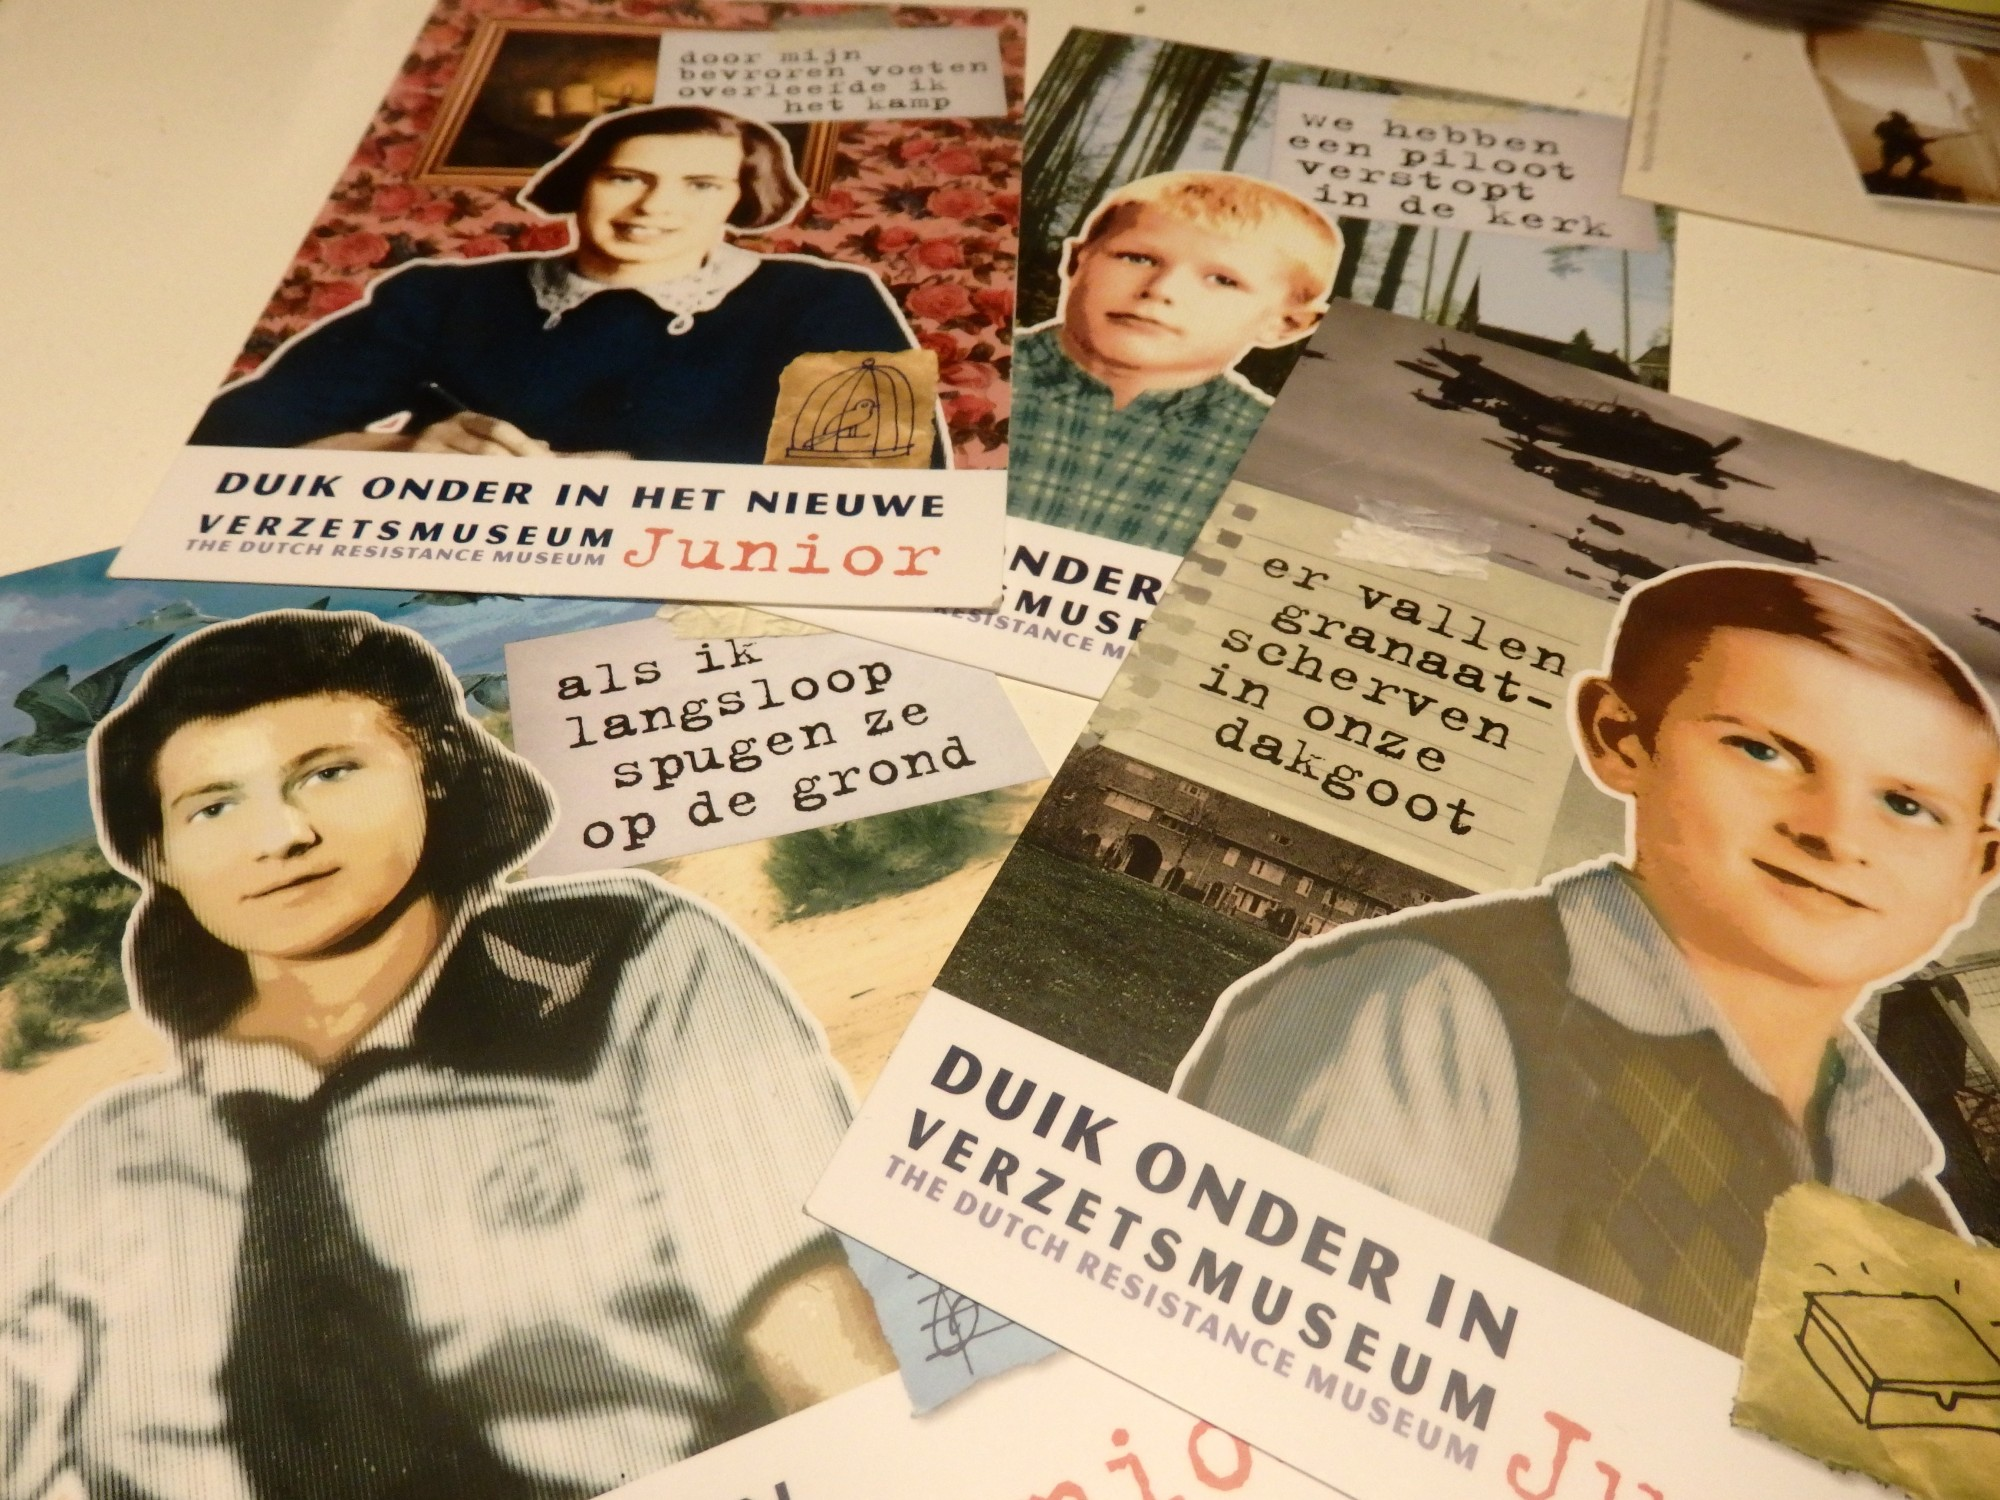 These postcards are free for visitors to the Dutch Resistance Museum